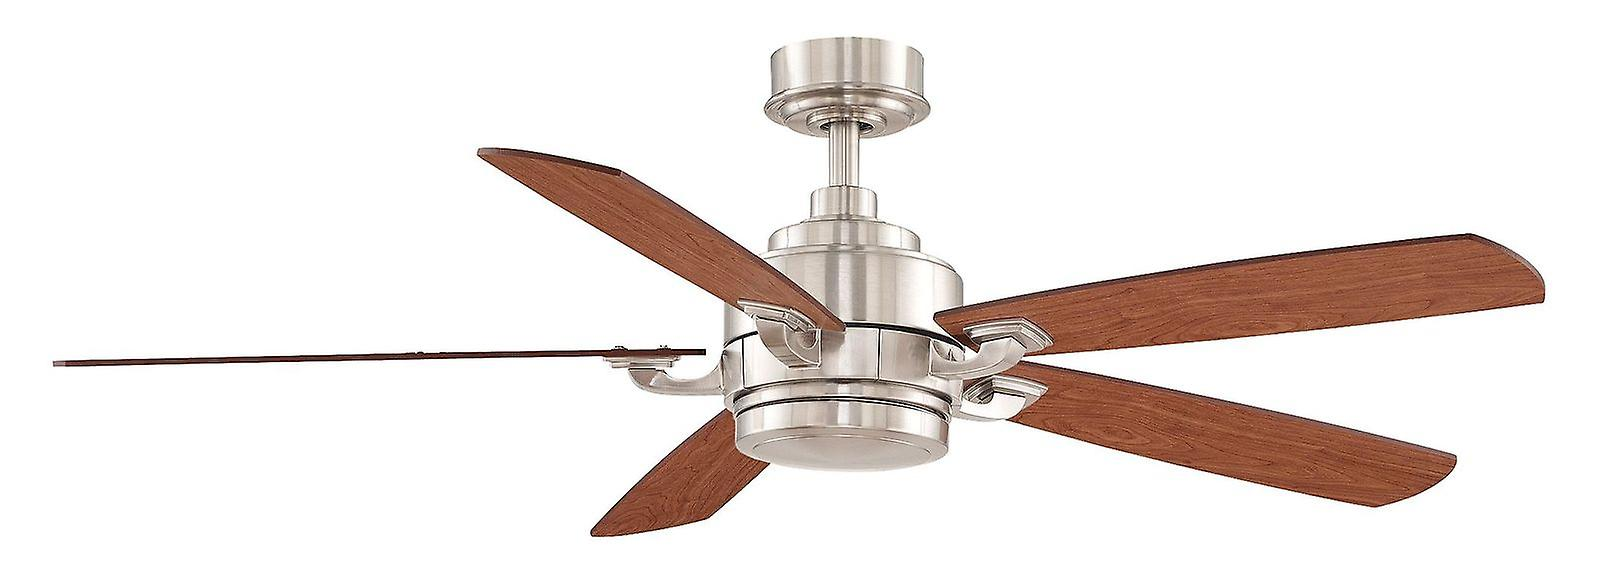 Ceiling fan THE BENITO 132cm   52& 034; Chrome with remote